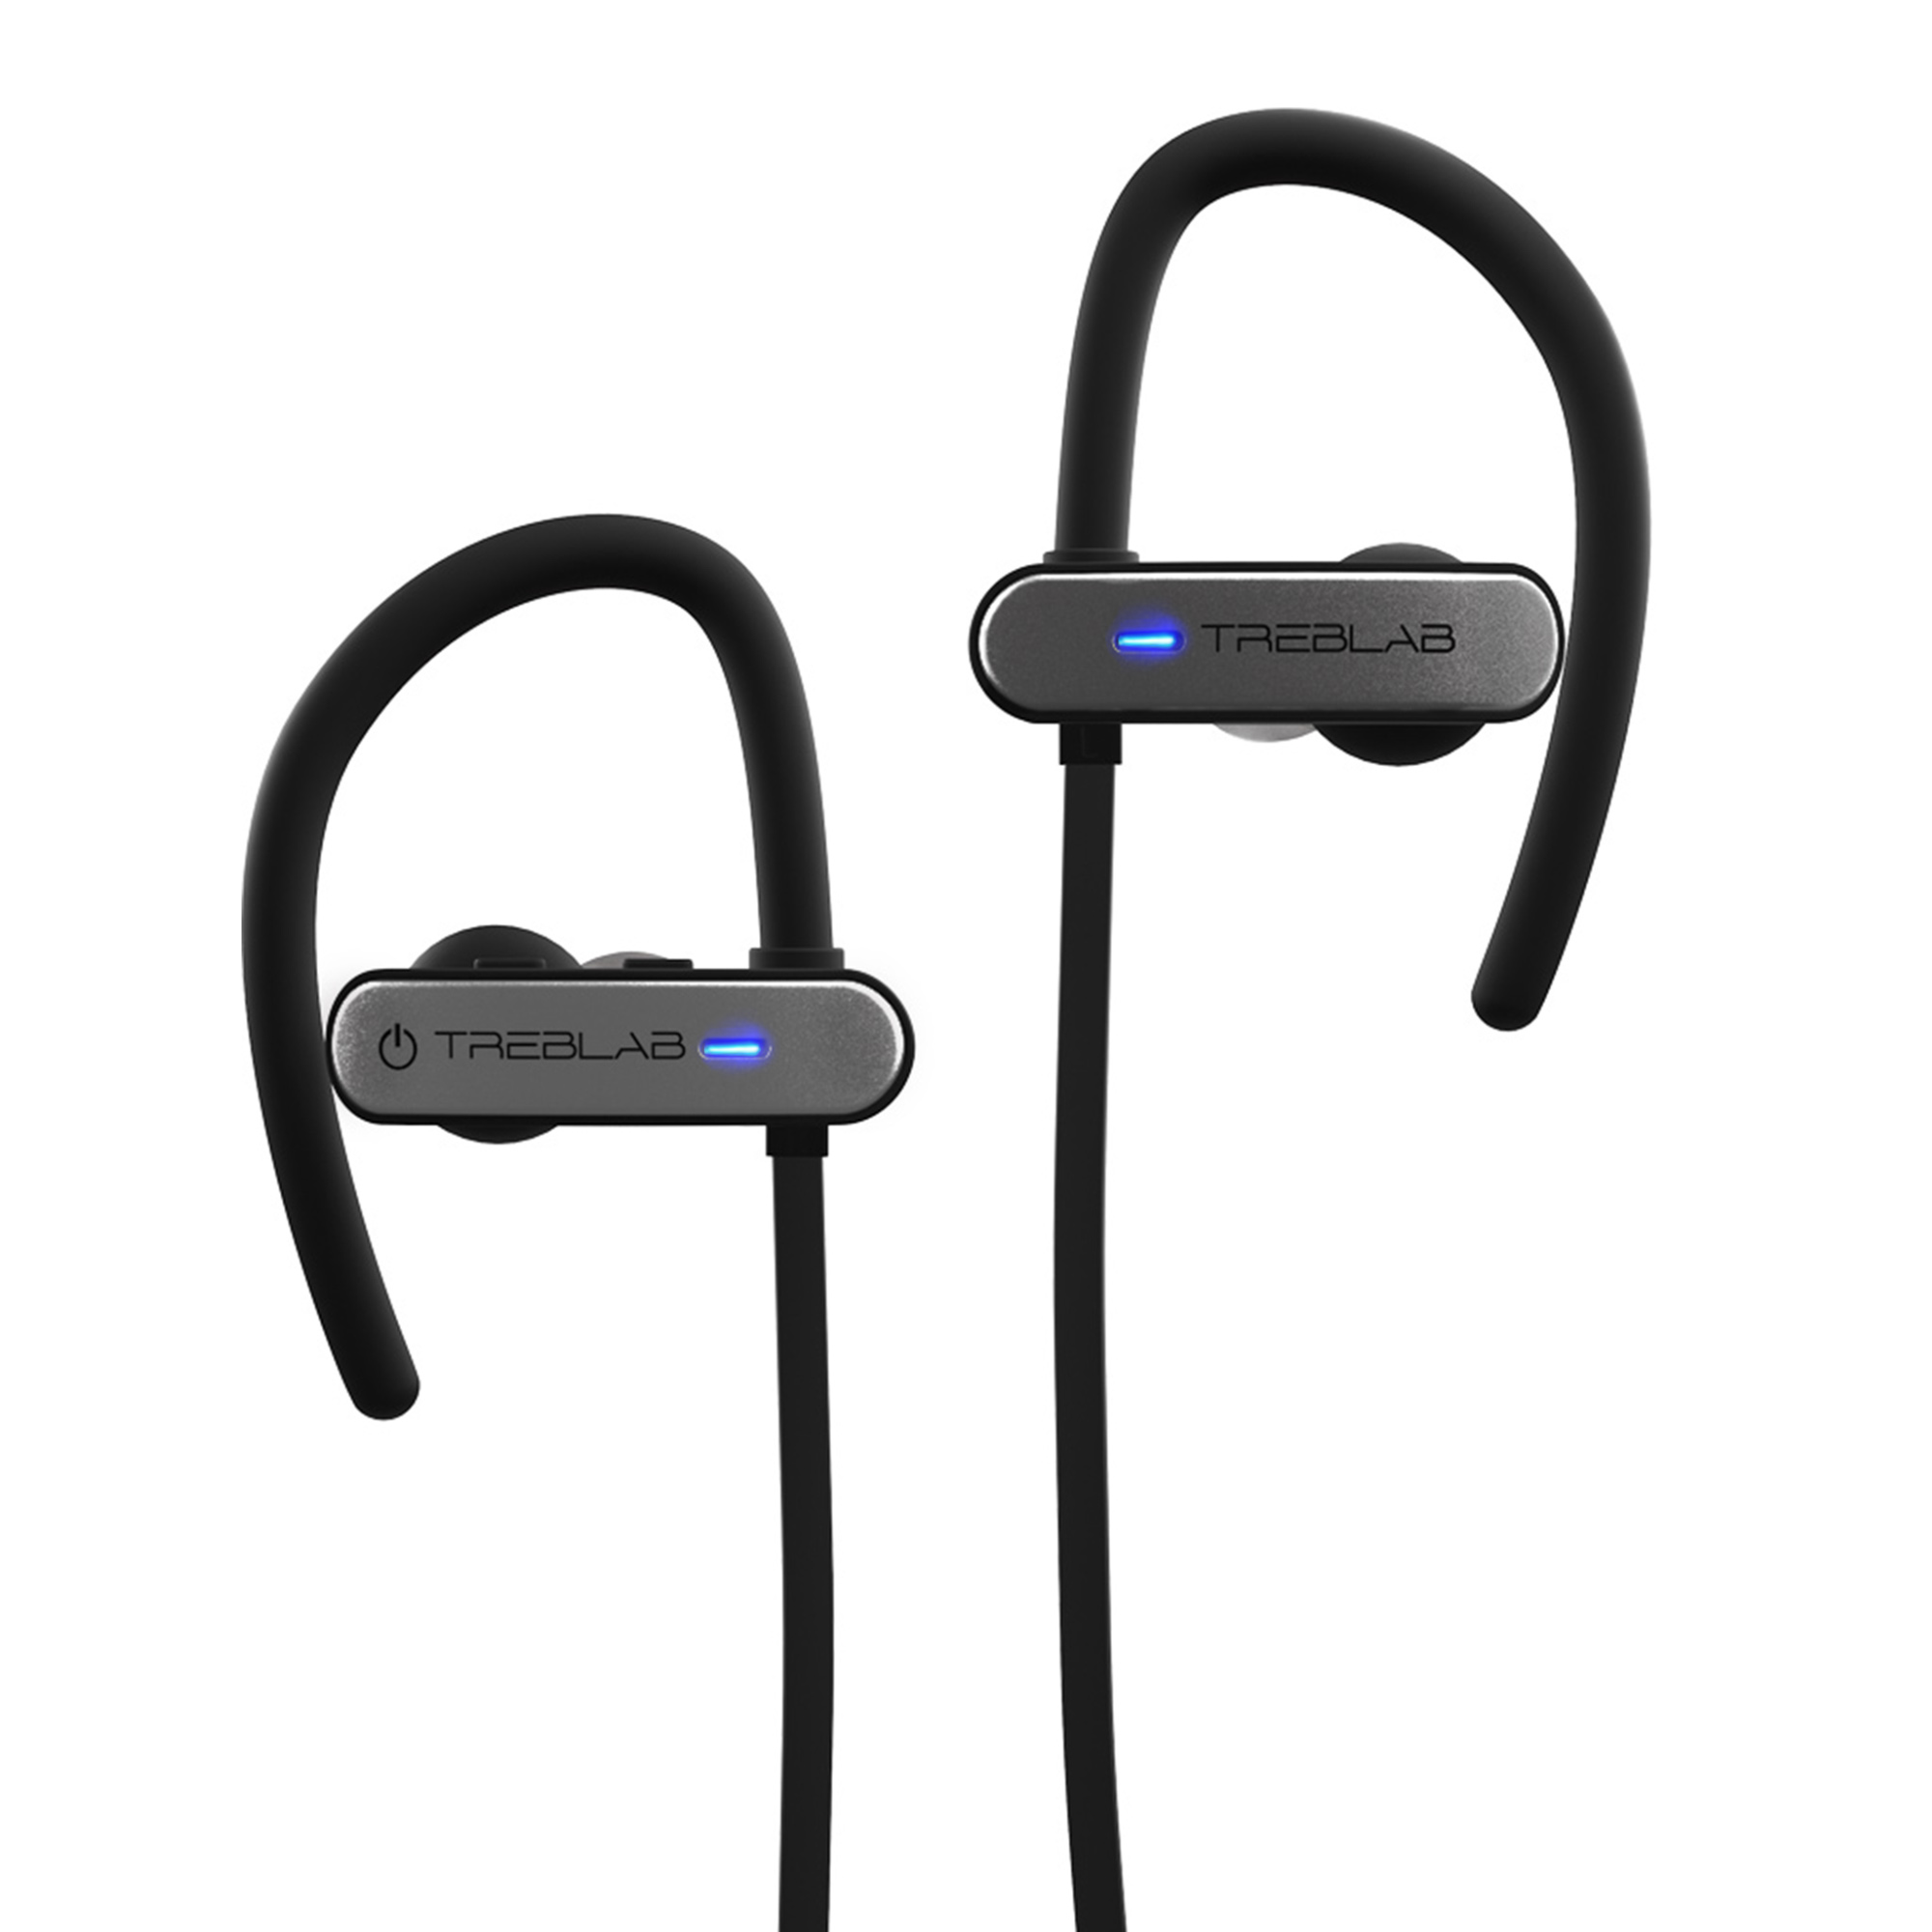 TREBLAB XR800 Bluetooth Sports Headphones, Wireless Earbuds for Running, Gym Workouts. IPX7 Waterproof, Sweatproof, Secure-Fit Noise Cancelling Earphones w/Mic, Stylish Cordless Headset (Black-Gray)